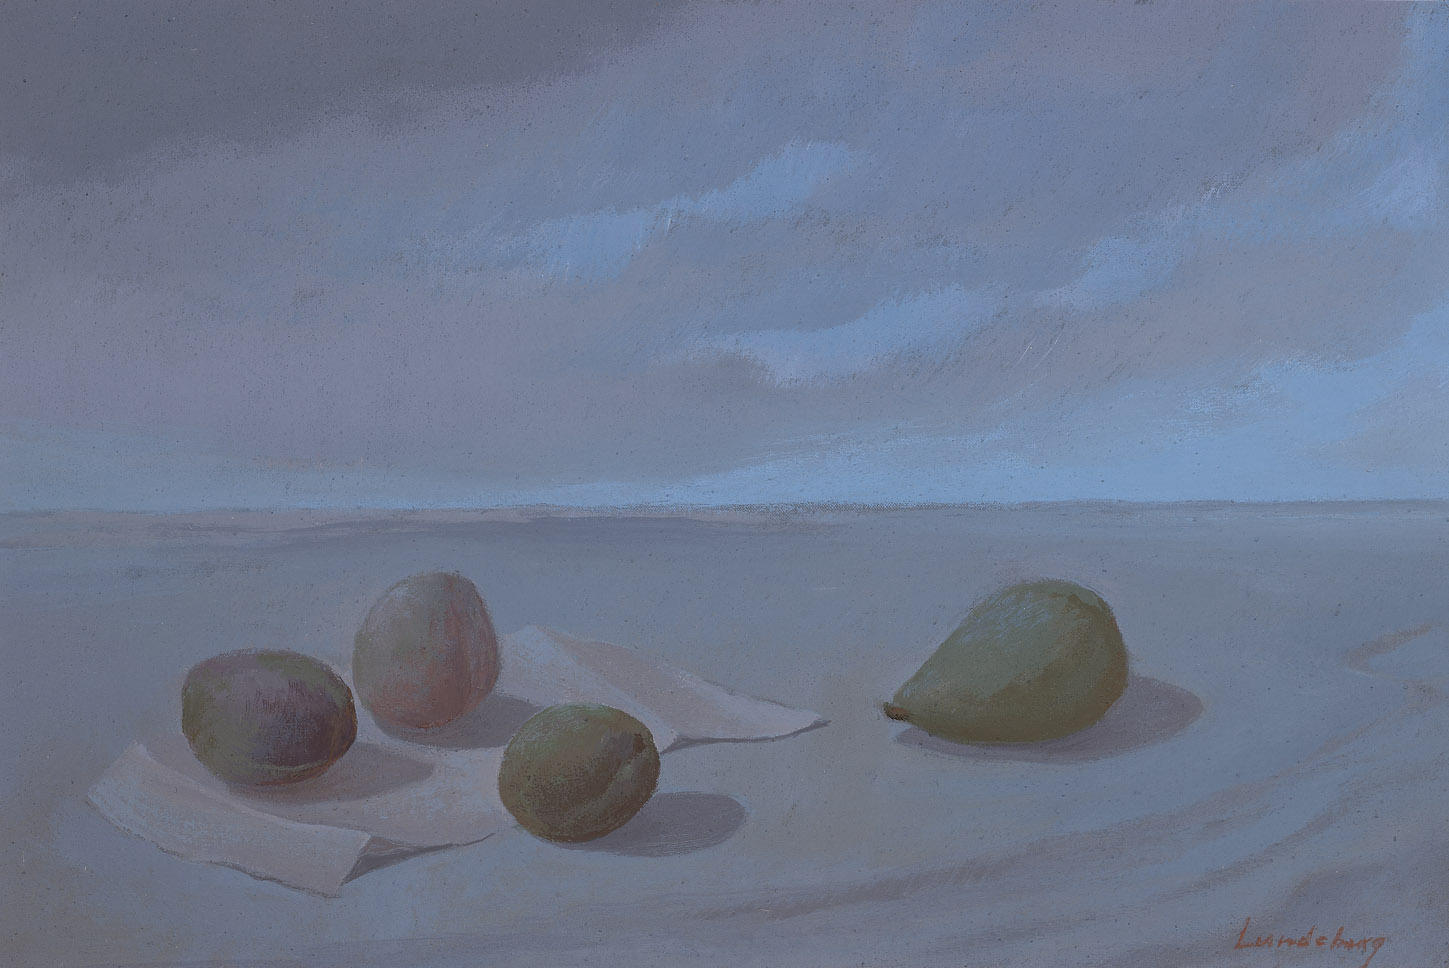 Three Plums and a Pear , 1976 acrylic on canvas 12 x 18 inches; 30.5 x 45.7 centimeters